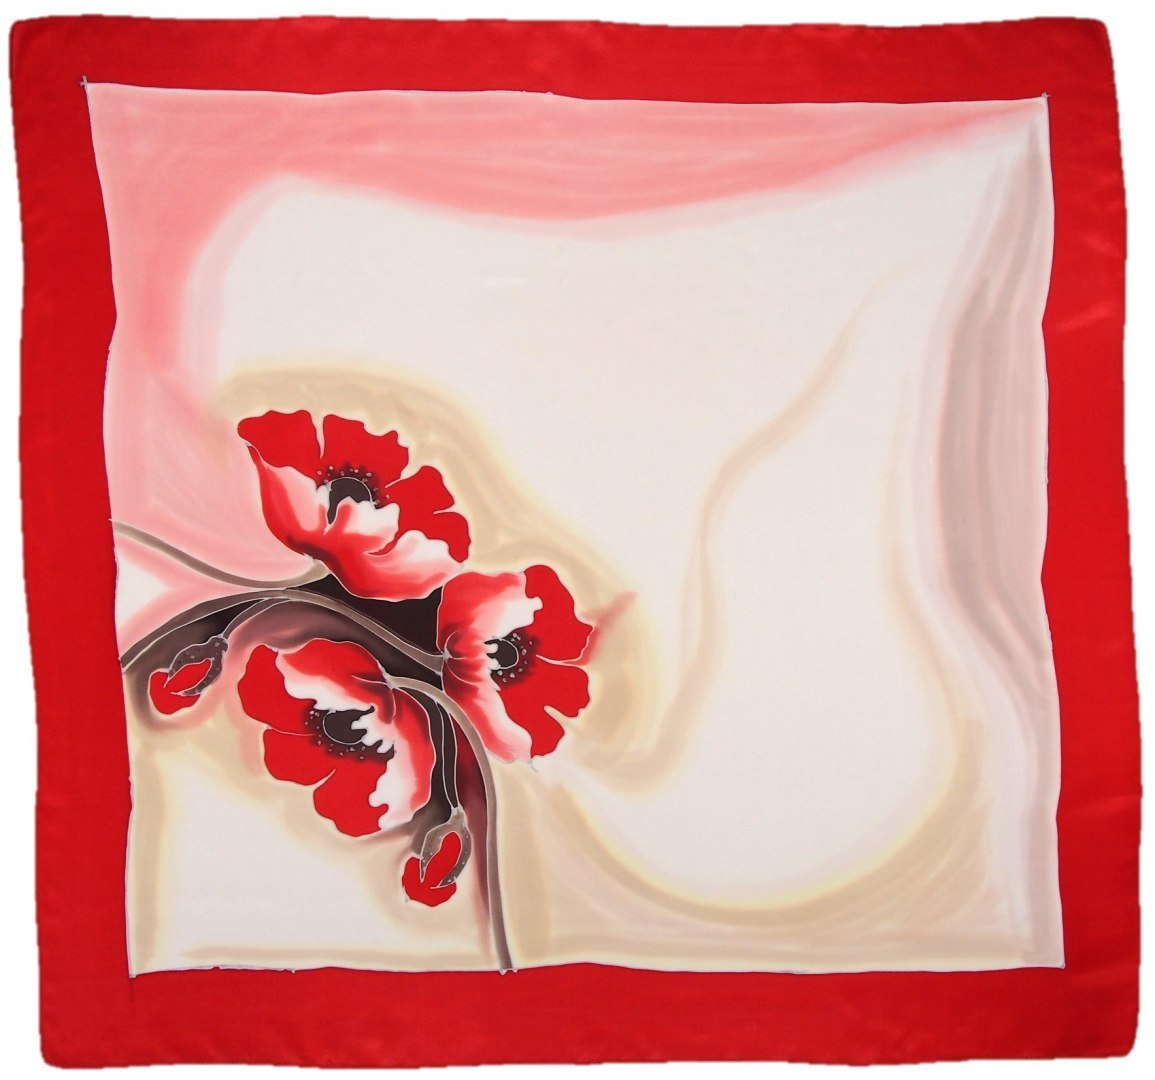 AM-676 Hand-painted silk scarf, 90x90cm